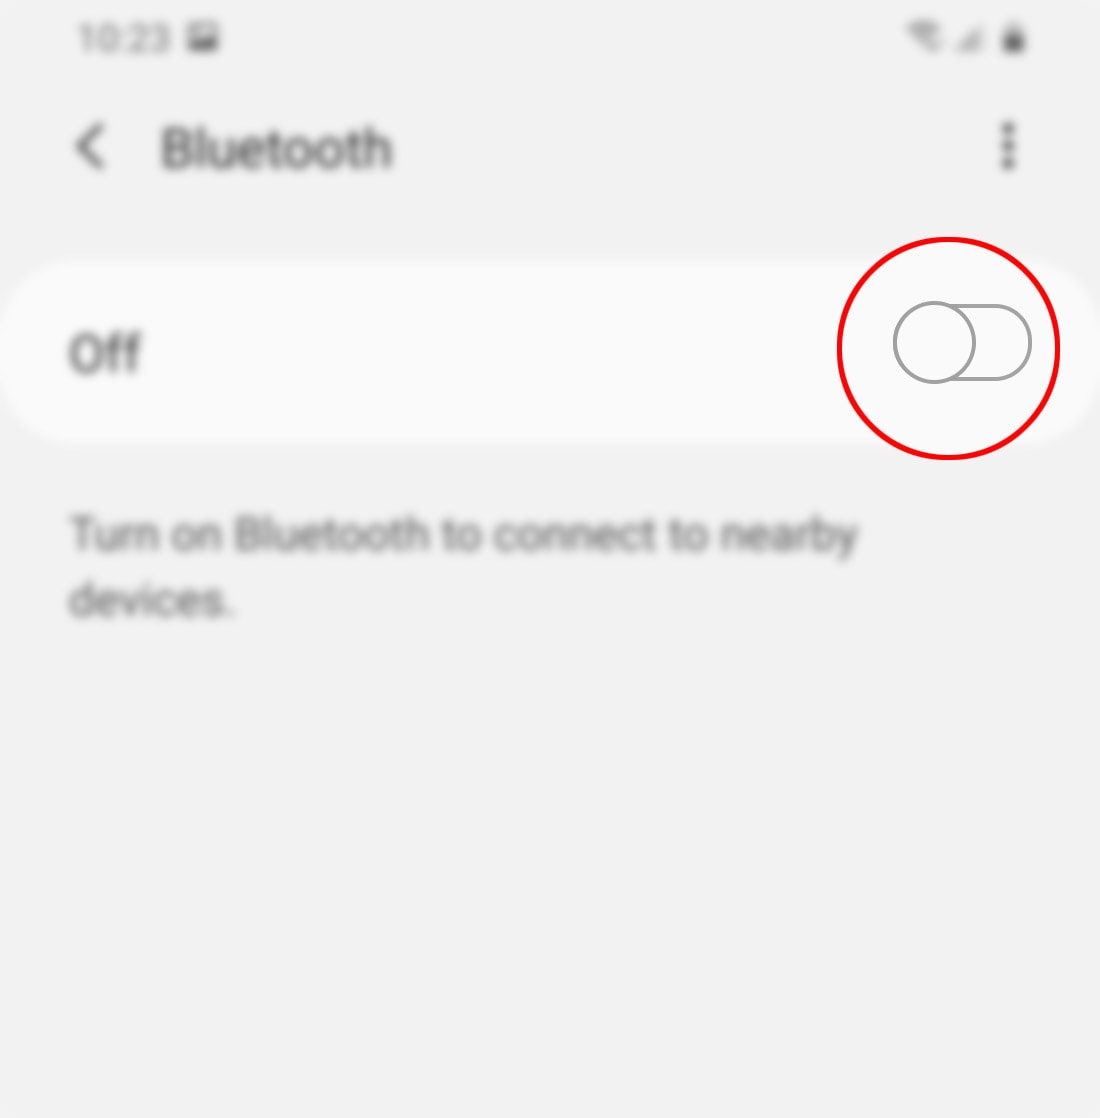 fix galaxy s20 low audio during calls - disable bluetooth